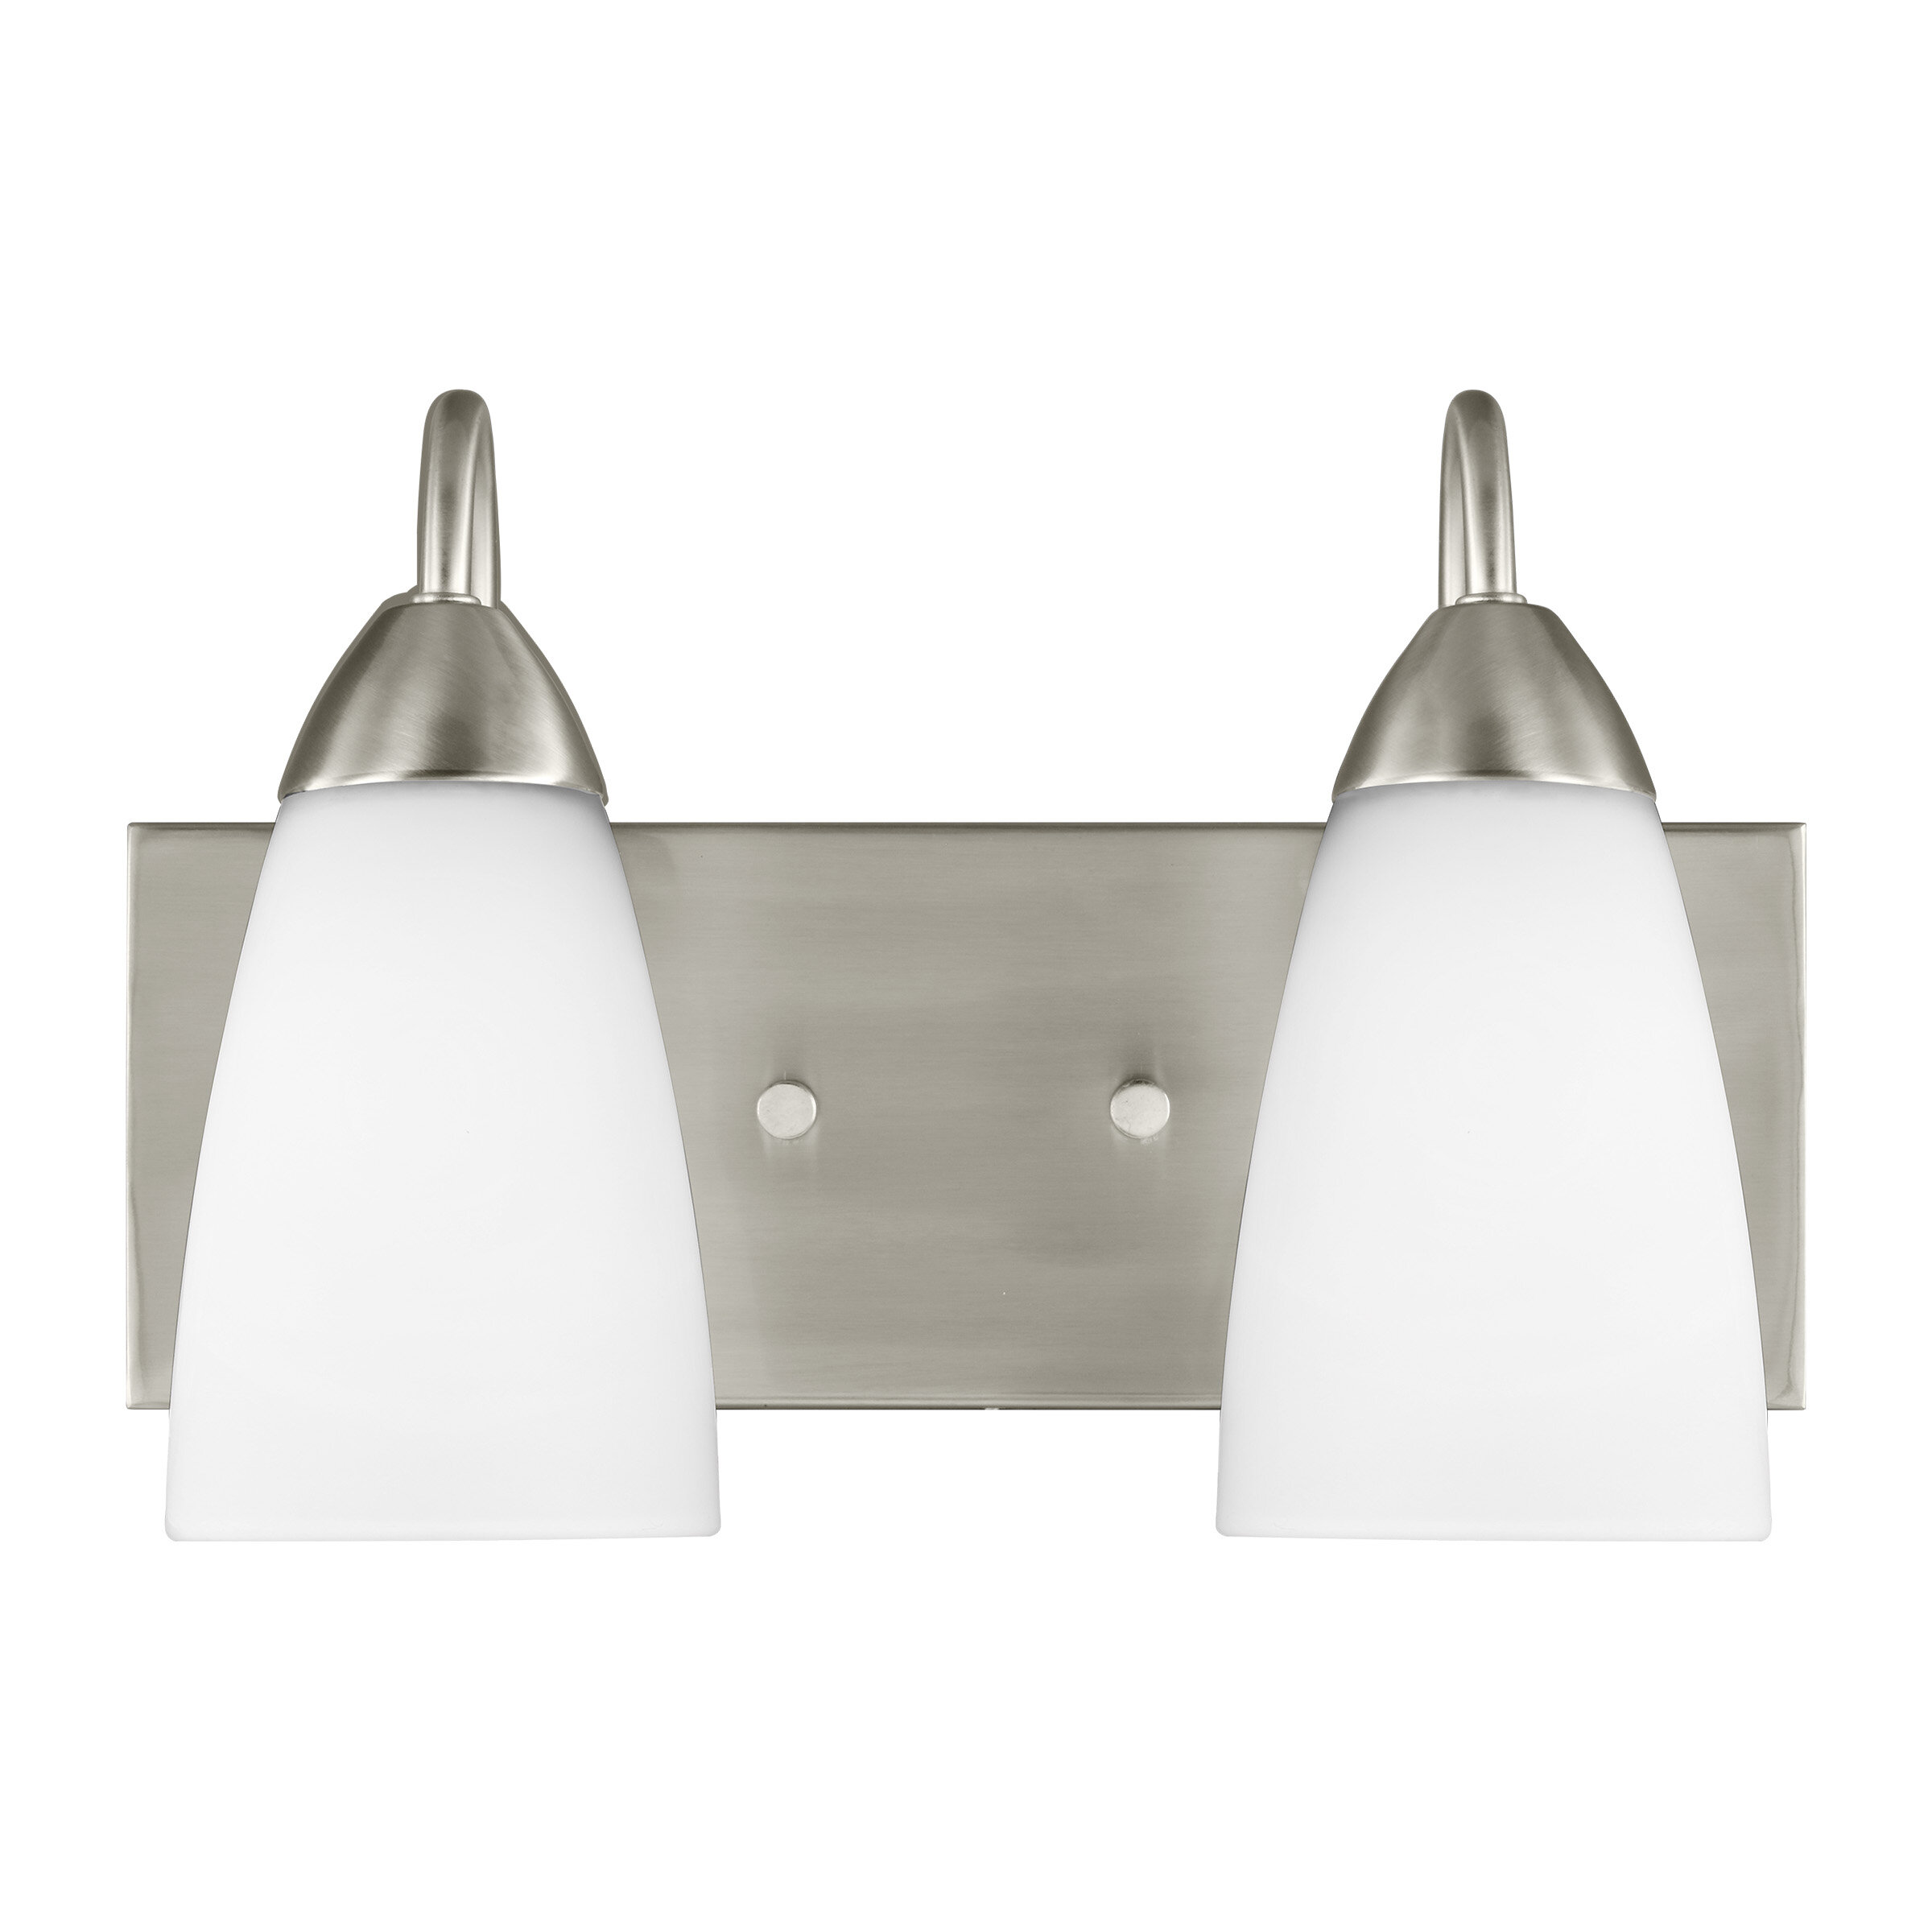 Ainsdale 2 Light Dimmable Brushed Nickel Vanity Light Reviews Joss Main